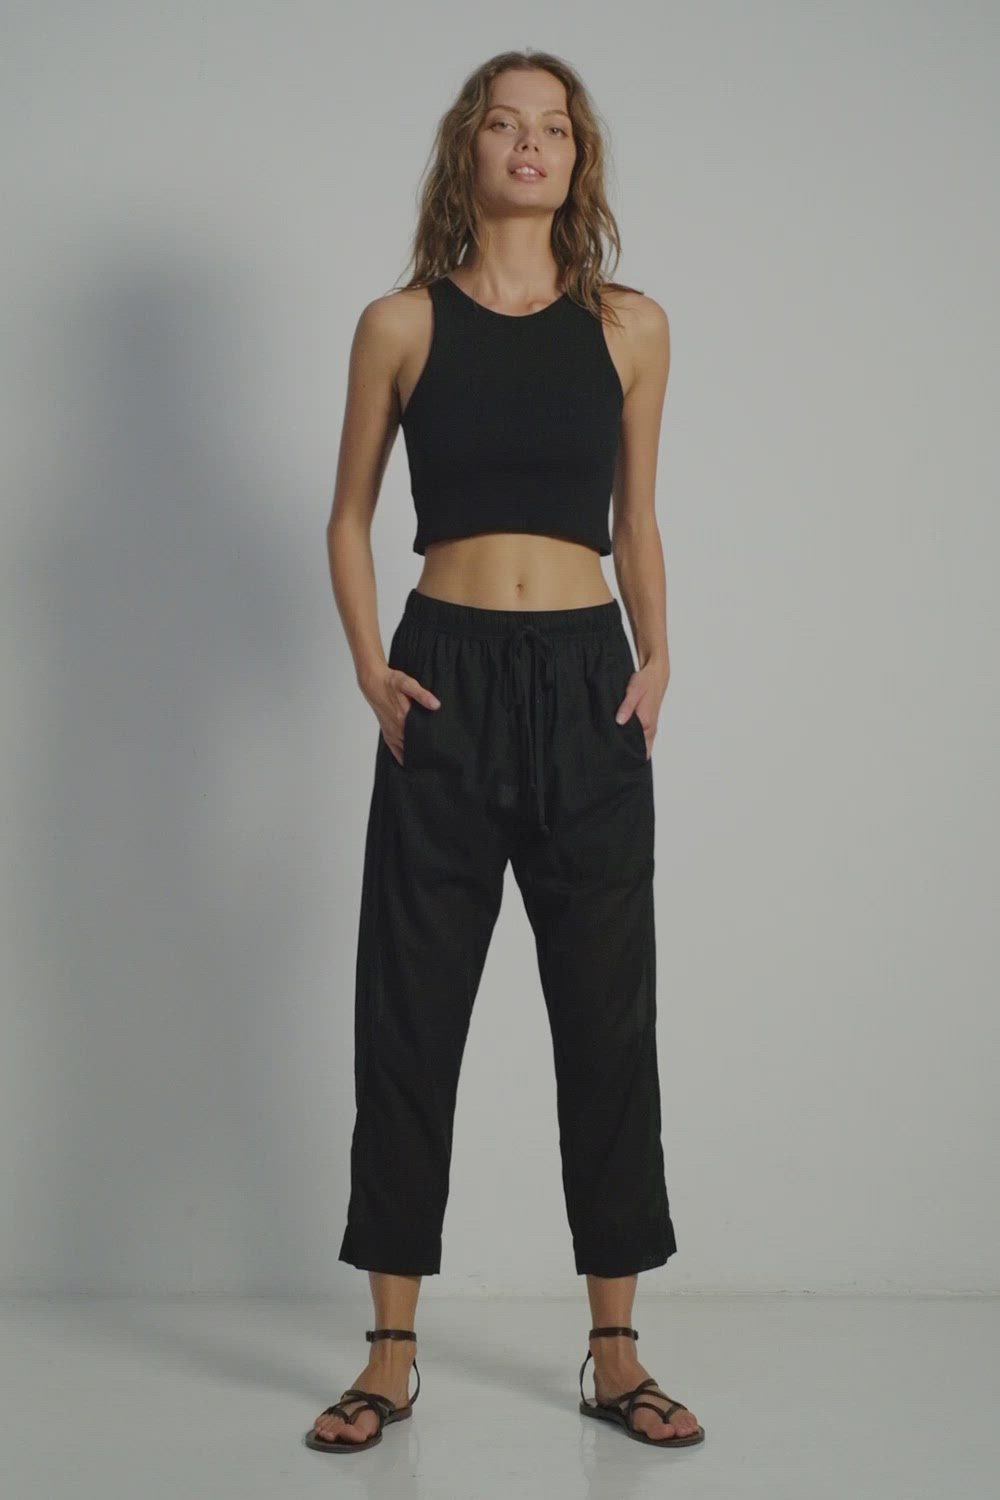 A woman wearing summer look by Lilya: black cotton casual pants and black crop top